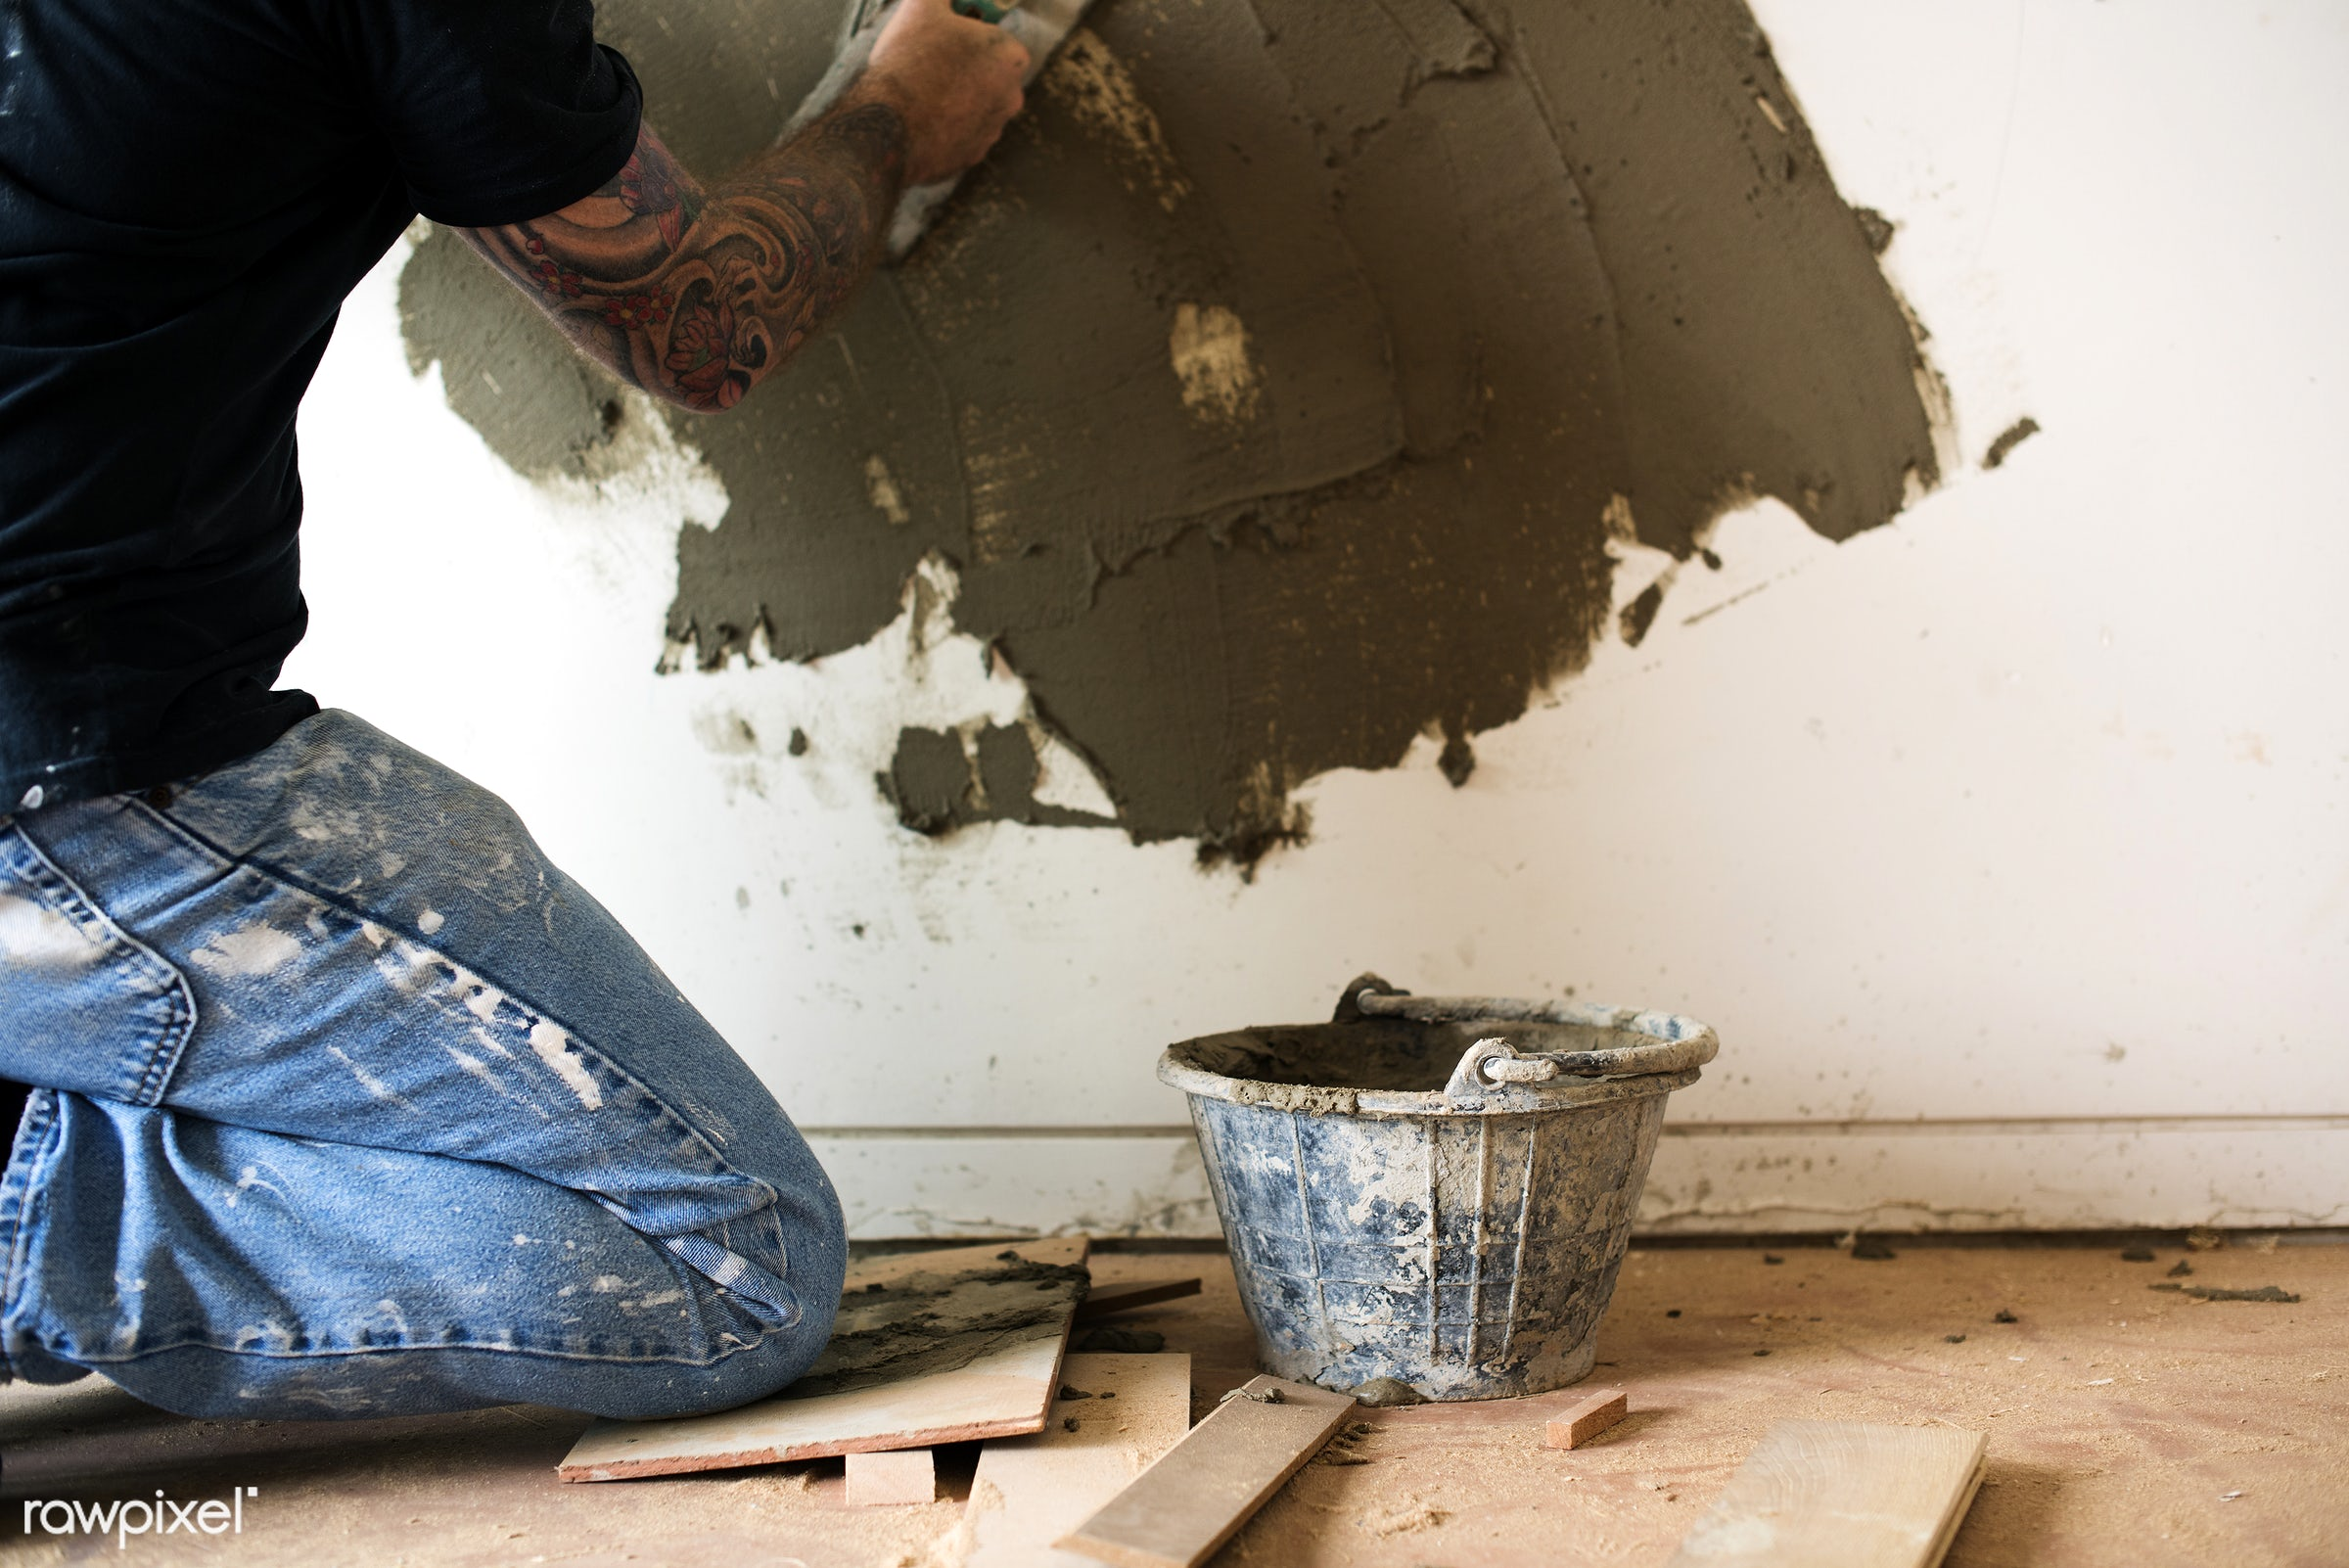 indoor, tool, equipment, grout, plaster, mortar, worker, repair, cement, tattoo, renovation, construction, man, work,...